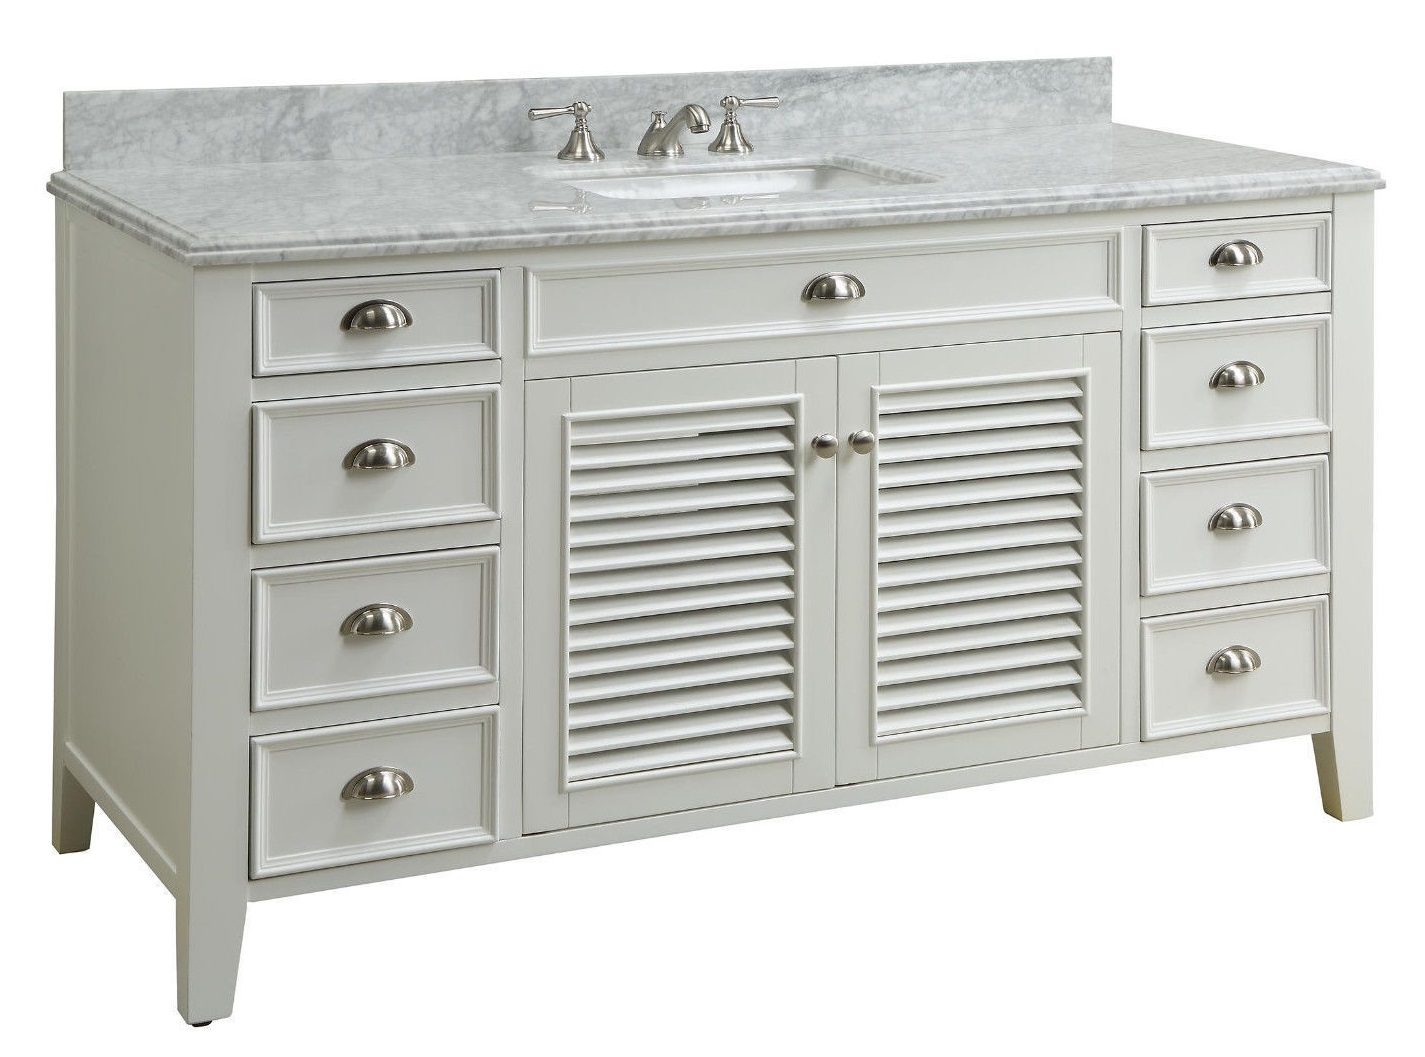 double sweet bathroom sink vanity top traditional astralboutik ideas with inspiration marvelous to sensational vanities pertaining inch alluring plan